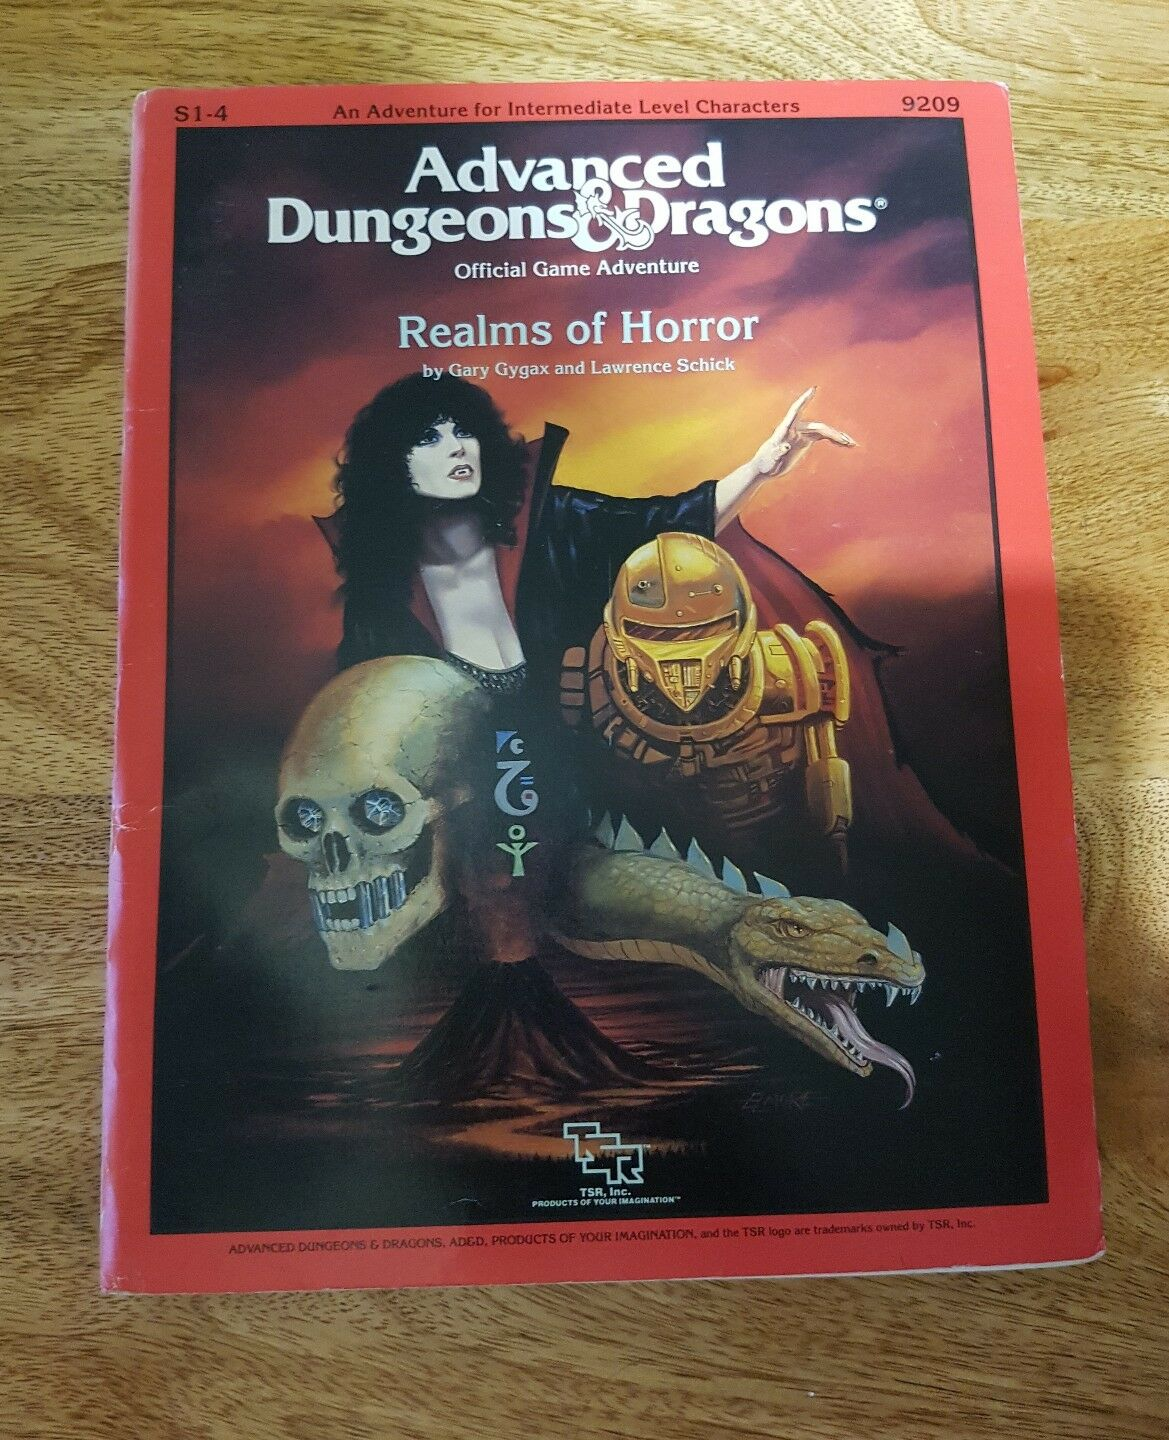 Rare Advanced Dungeons & Dragons Official Game Adventure  Realms of Horror S1-4